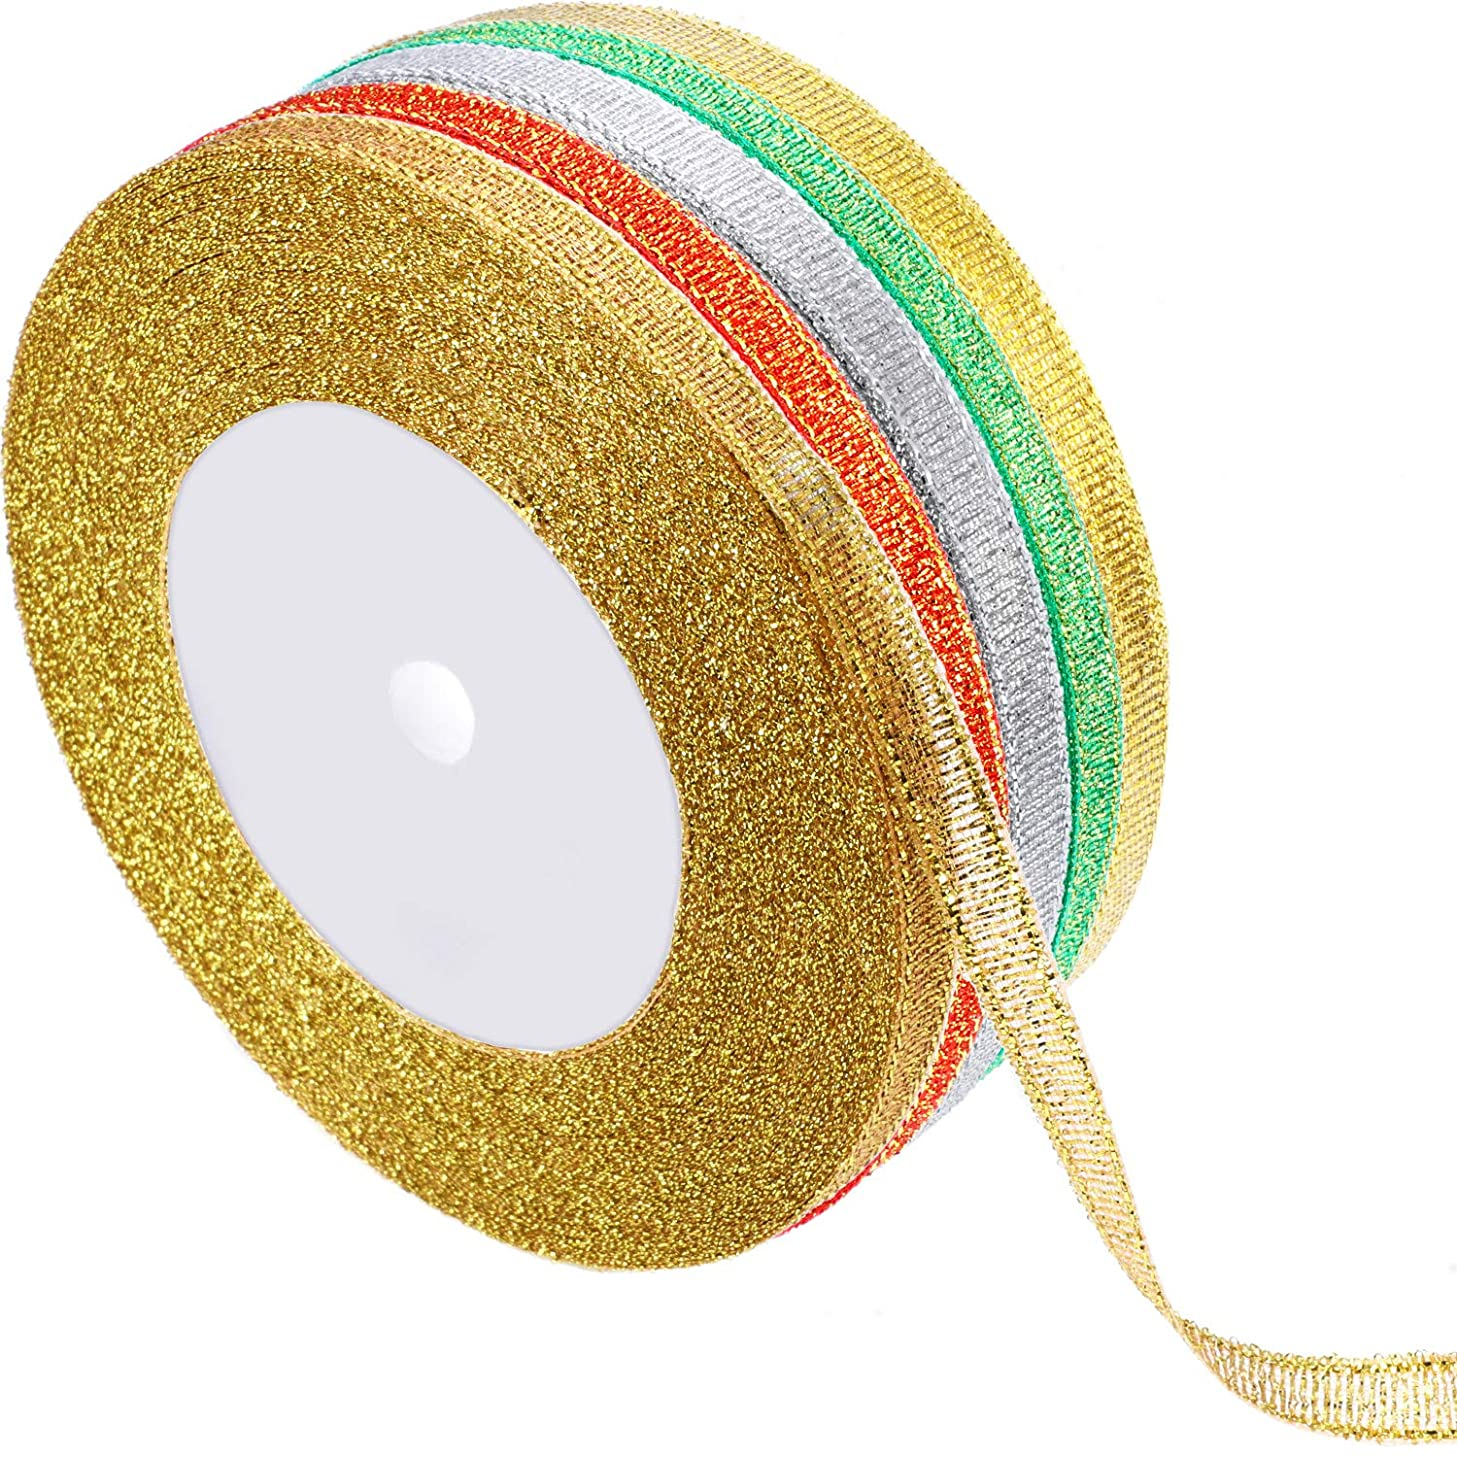 Gejoy 5 Rolls 0.24 inch Glitter Ribbons Metallic Ribbons for Crafters Gifts Wrapping Decorations DIY Crafts Arts (Gold, Silver, Colorful Gold, Green, Red)